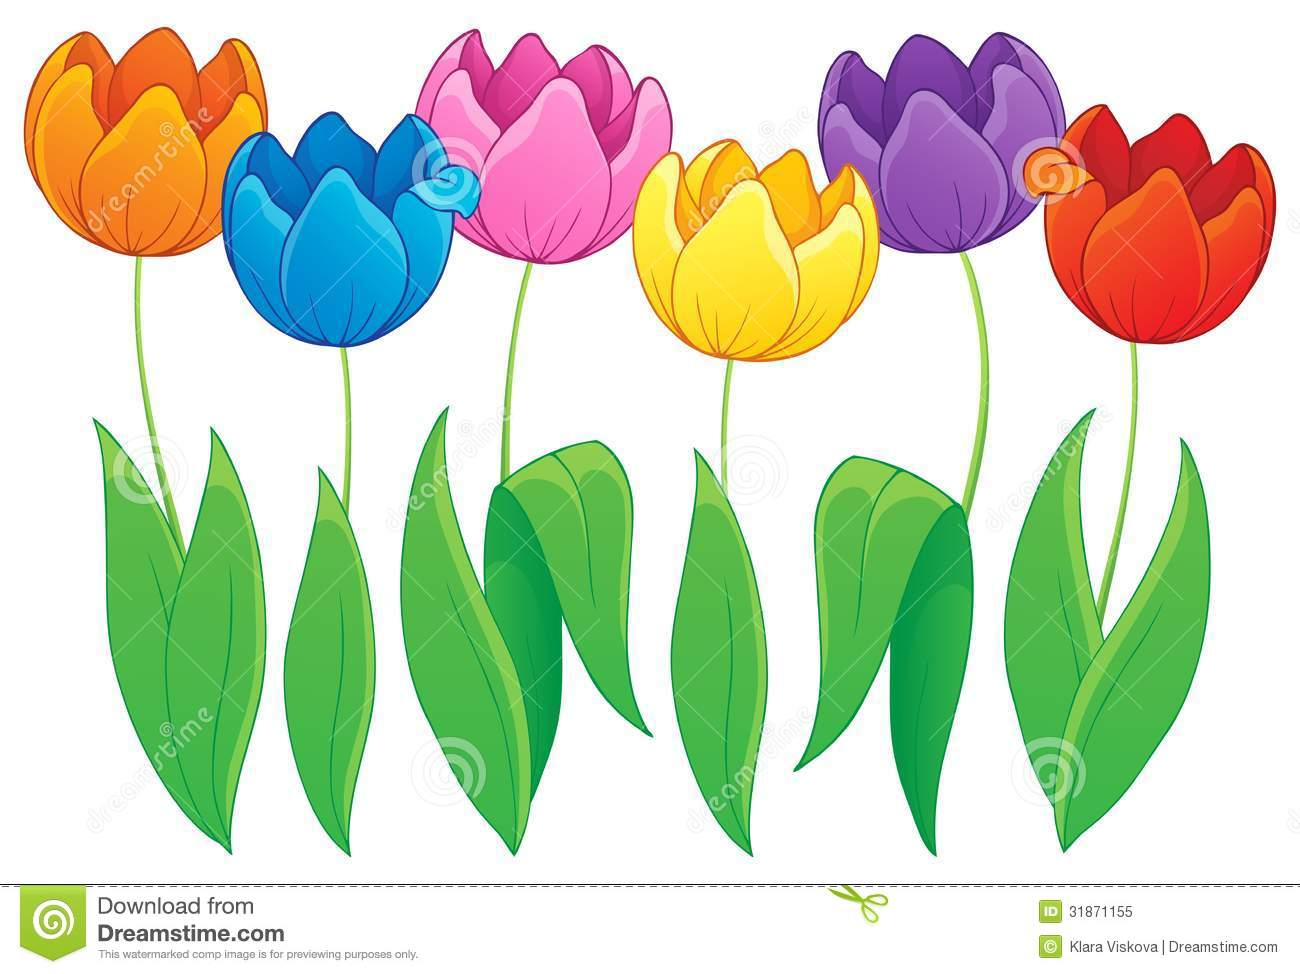 Tulip Flower Clip Art. Image with tulip flower theme .